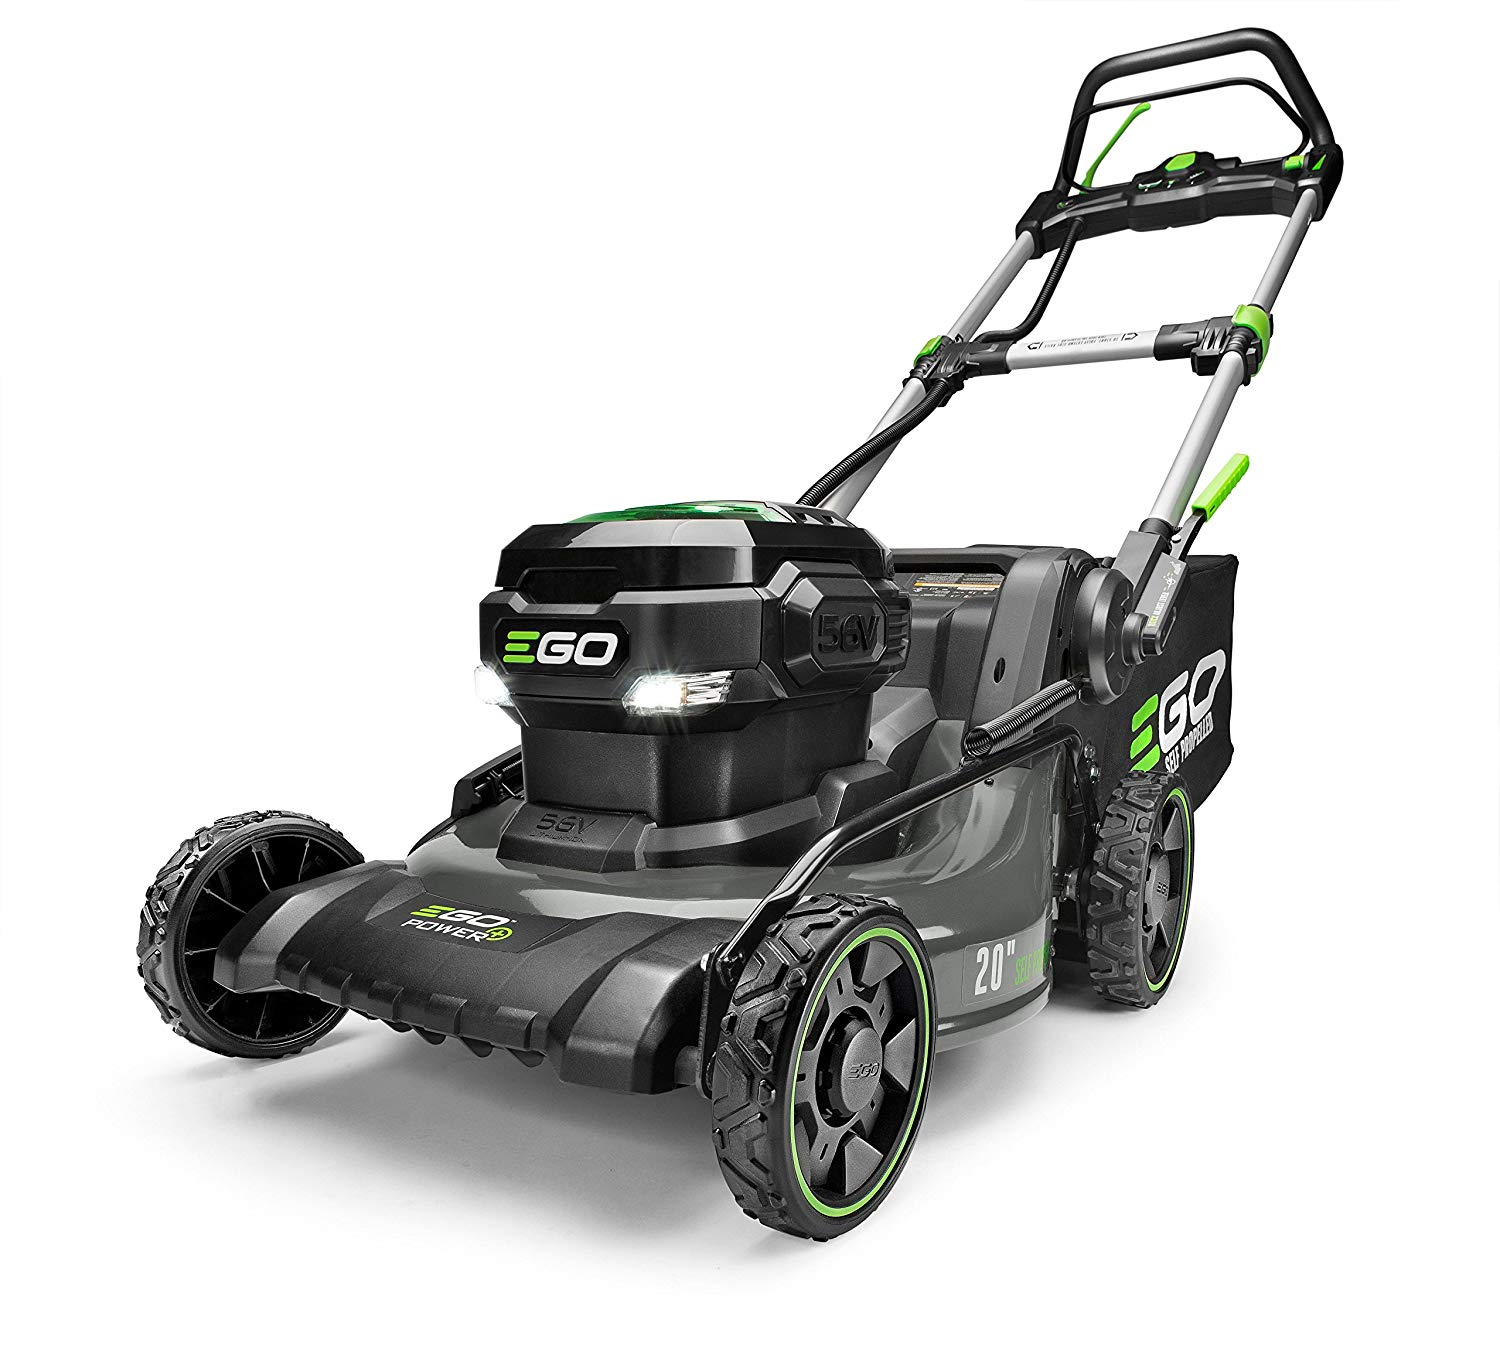 Best Lawn Mowers 2020.Ego Lawn Mower Review An Excellent Battery Powered